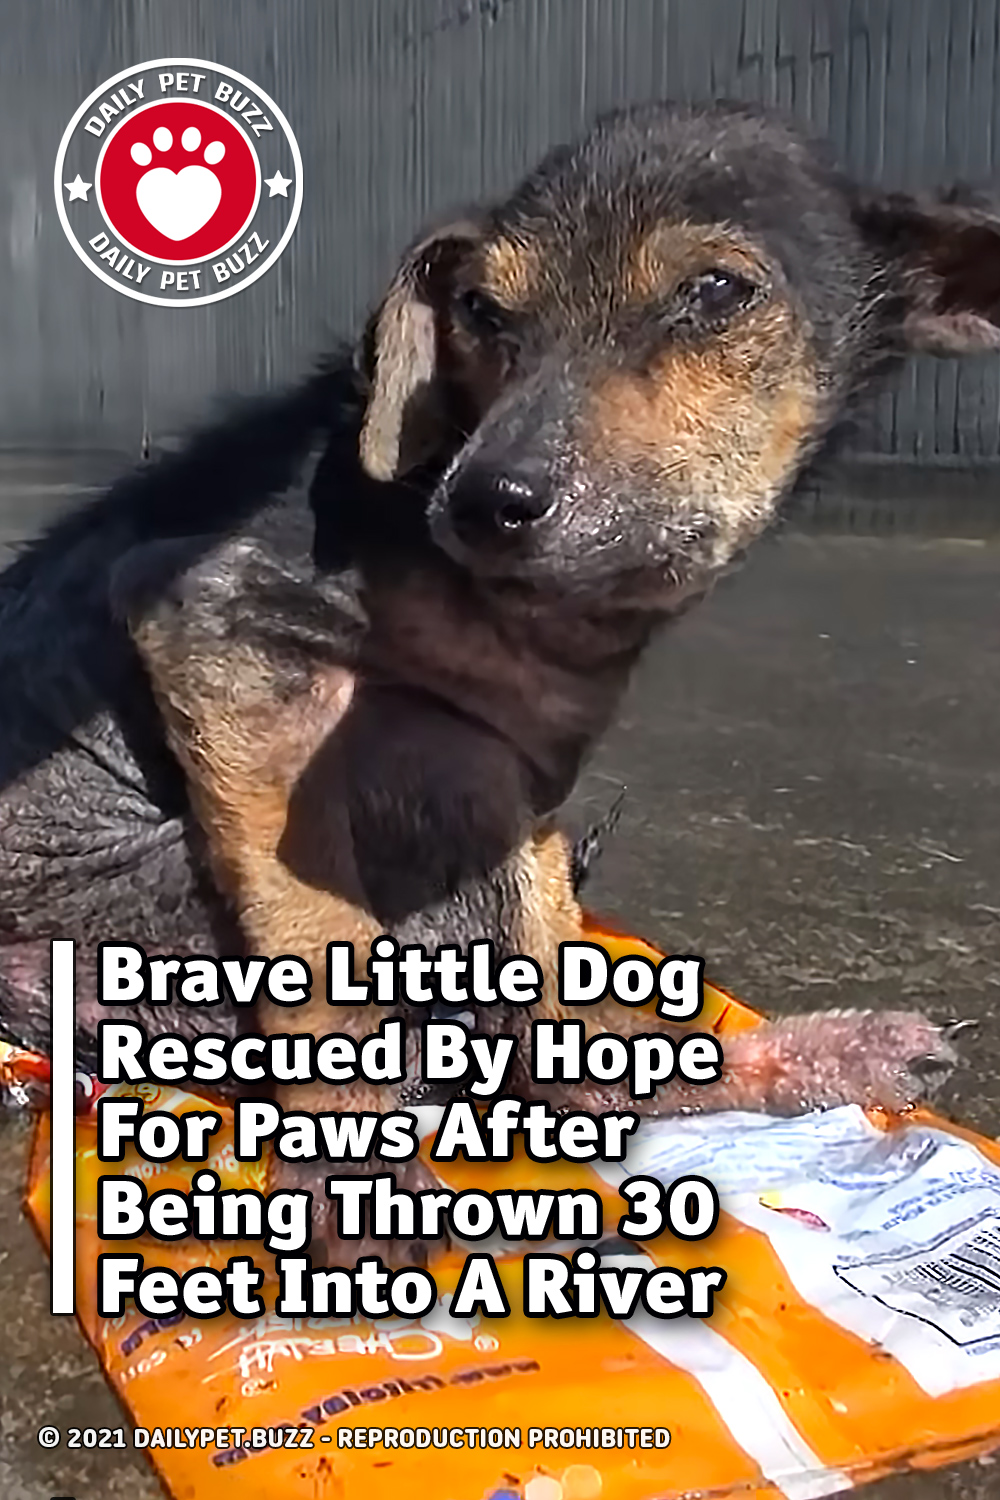 Brave Little Dog Rescued By Hope For Paws After Being Thrown 30 Feet Into A River